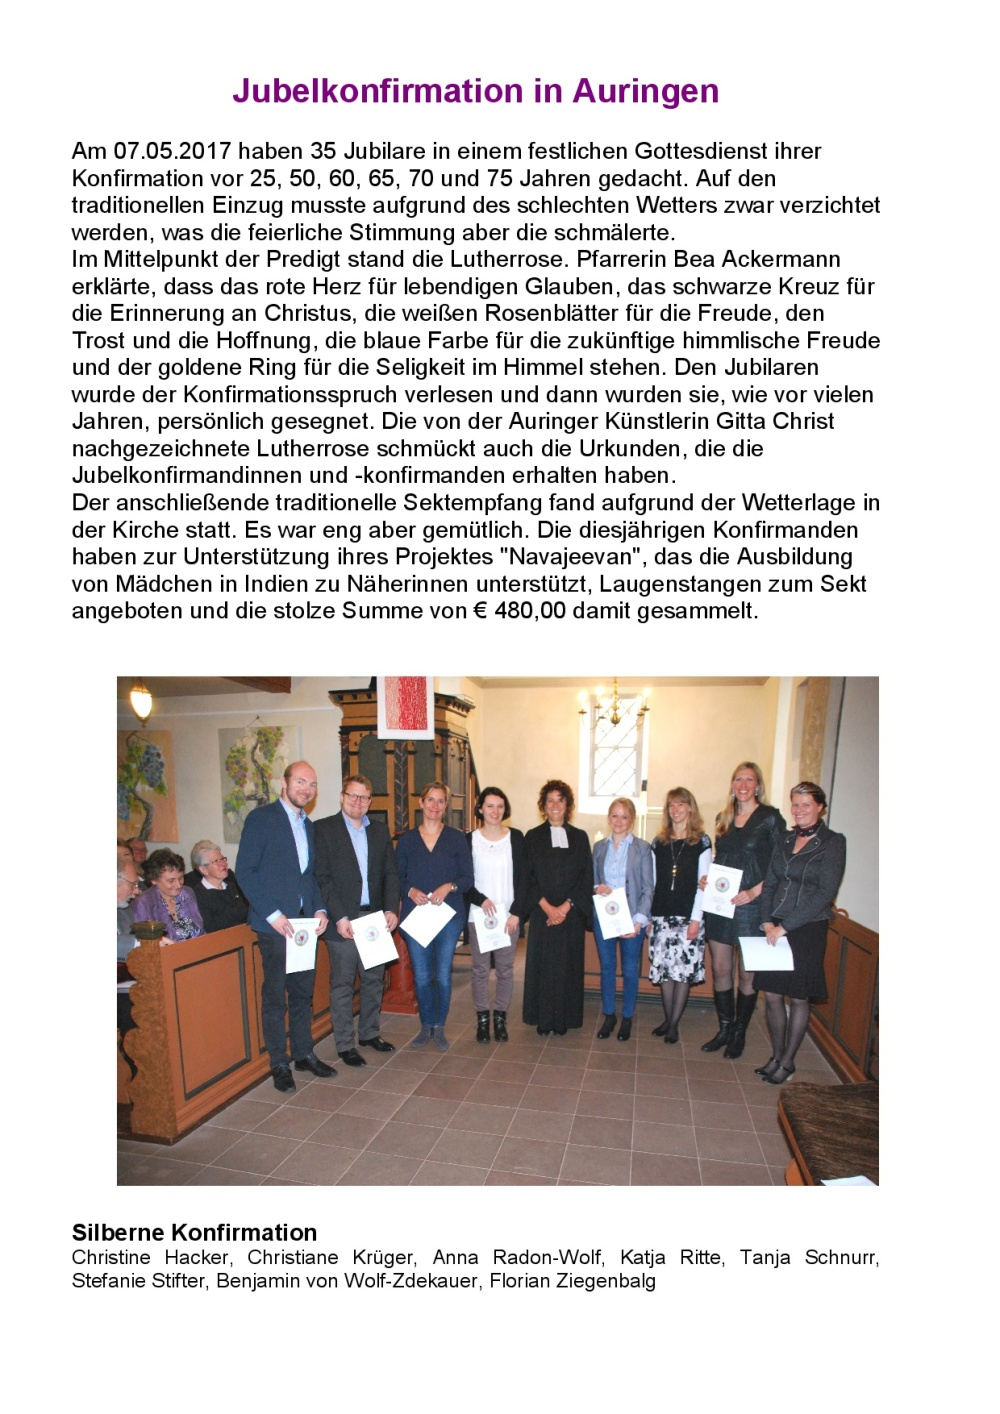 2017-05-07 Jubelkonfirmation in Auringen-001